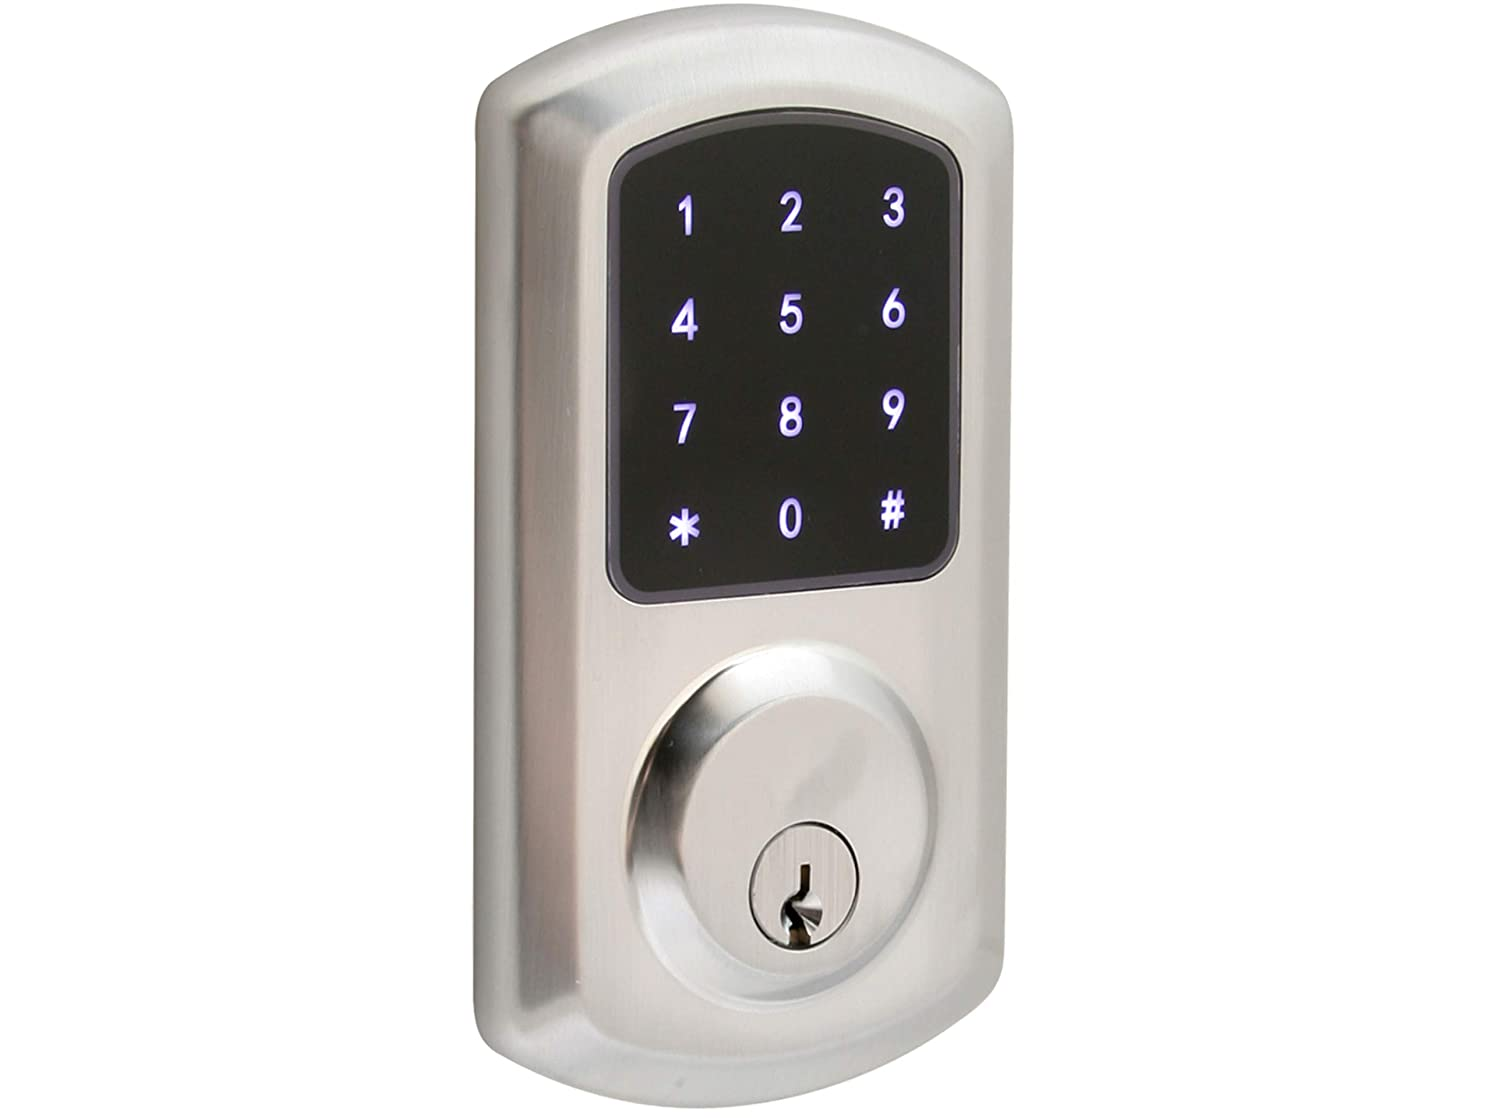 Prodigy SmartLock Commercial Grade Motorized Deadbolt 4000 with Keyless Entry (Satin Chrome)